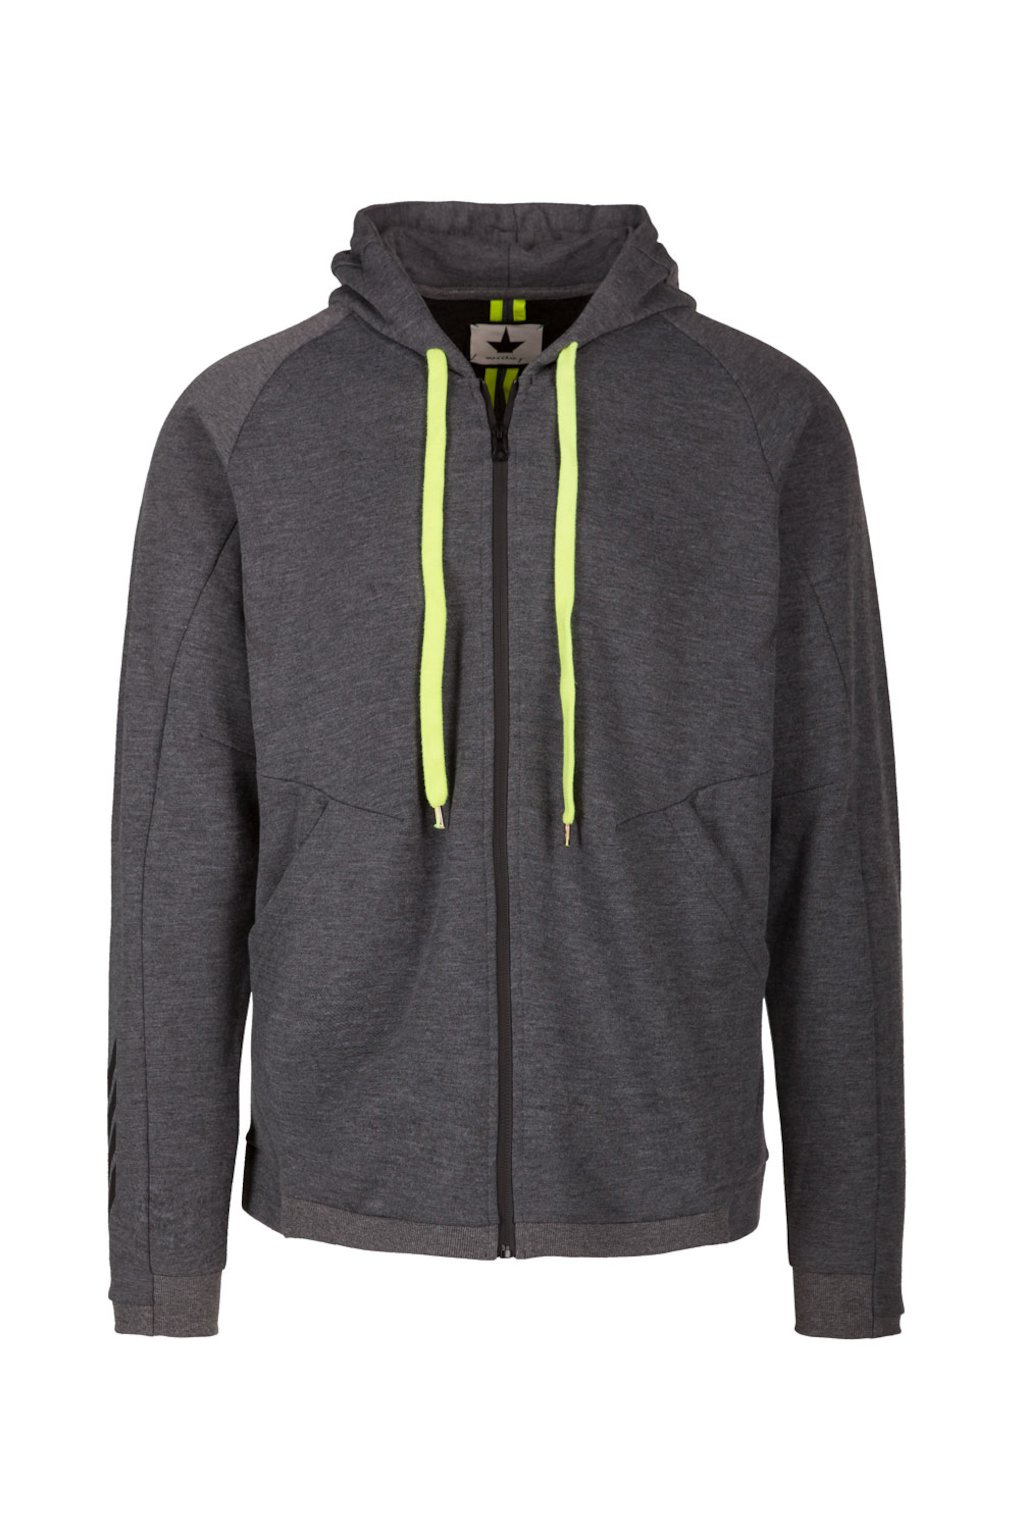 Technical Sweatshirt with Fluo Details